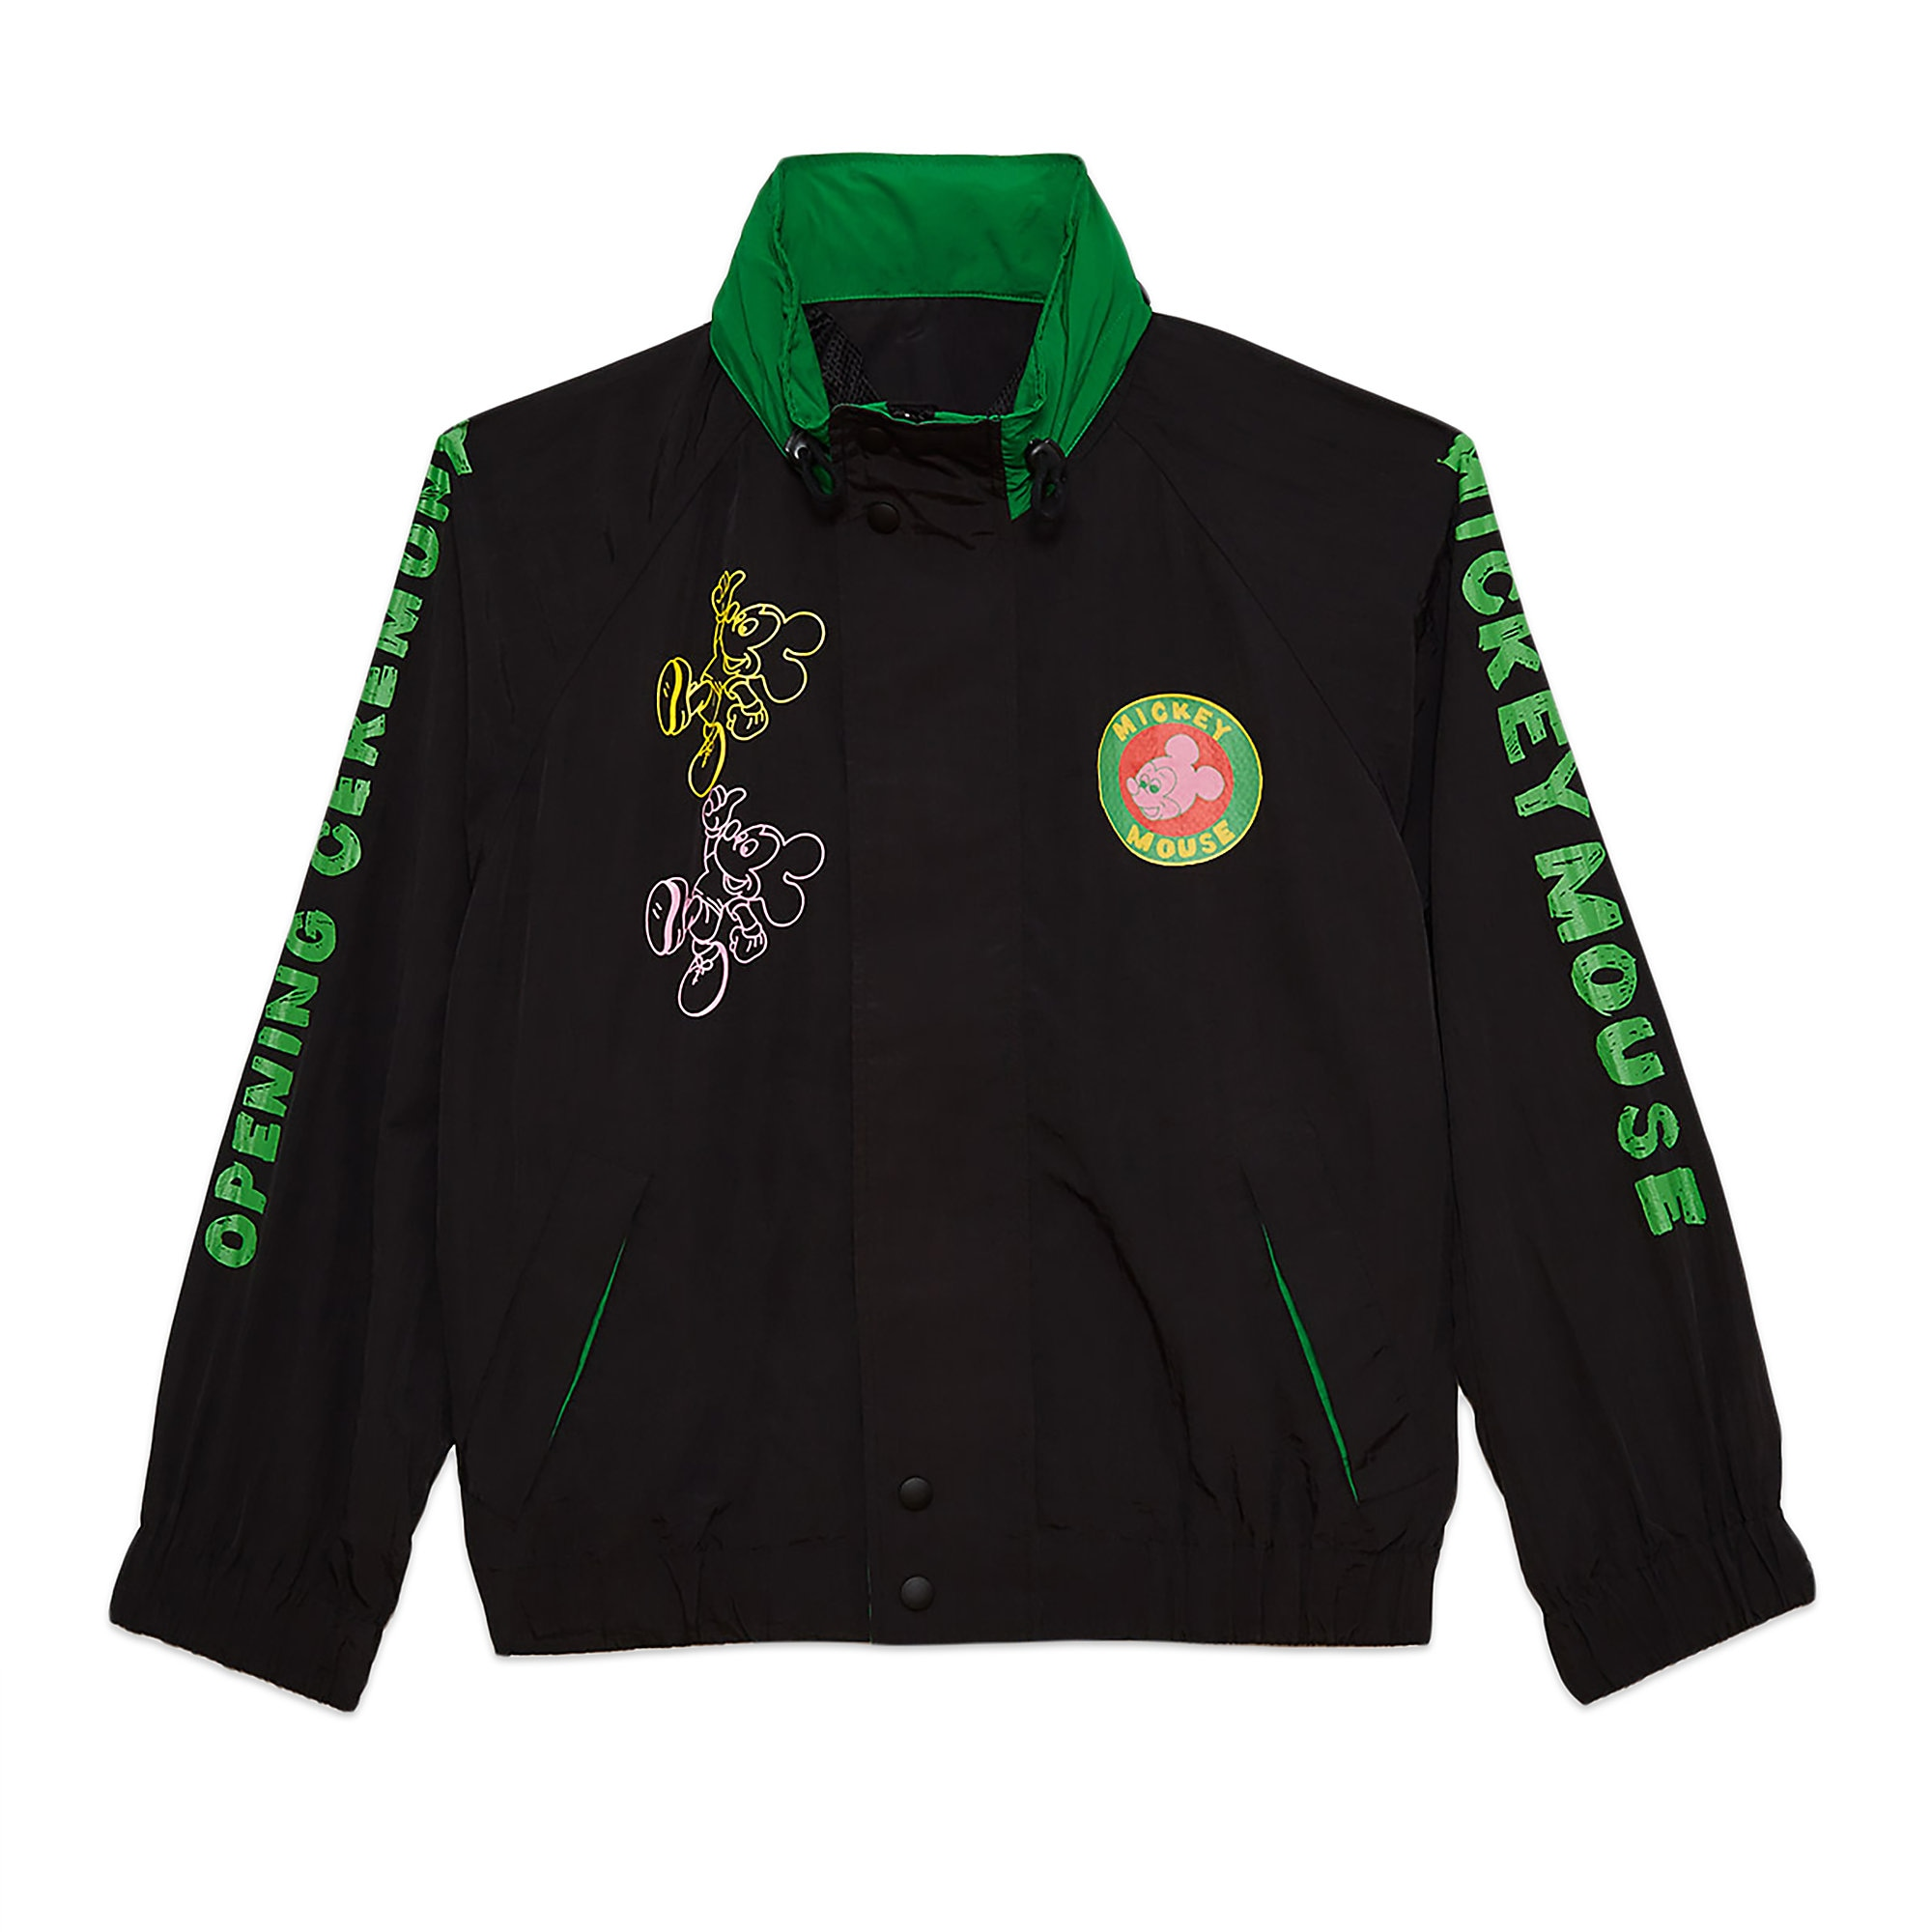 Mickey Mouse Track Jacket for Adults by Opening Ceremony